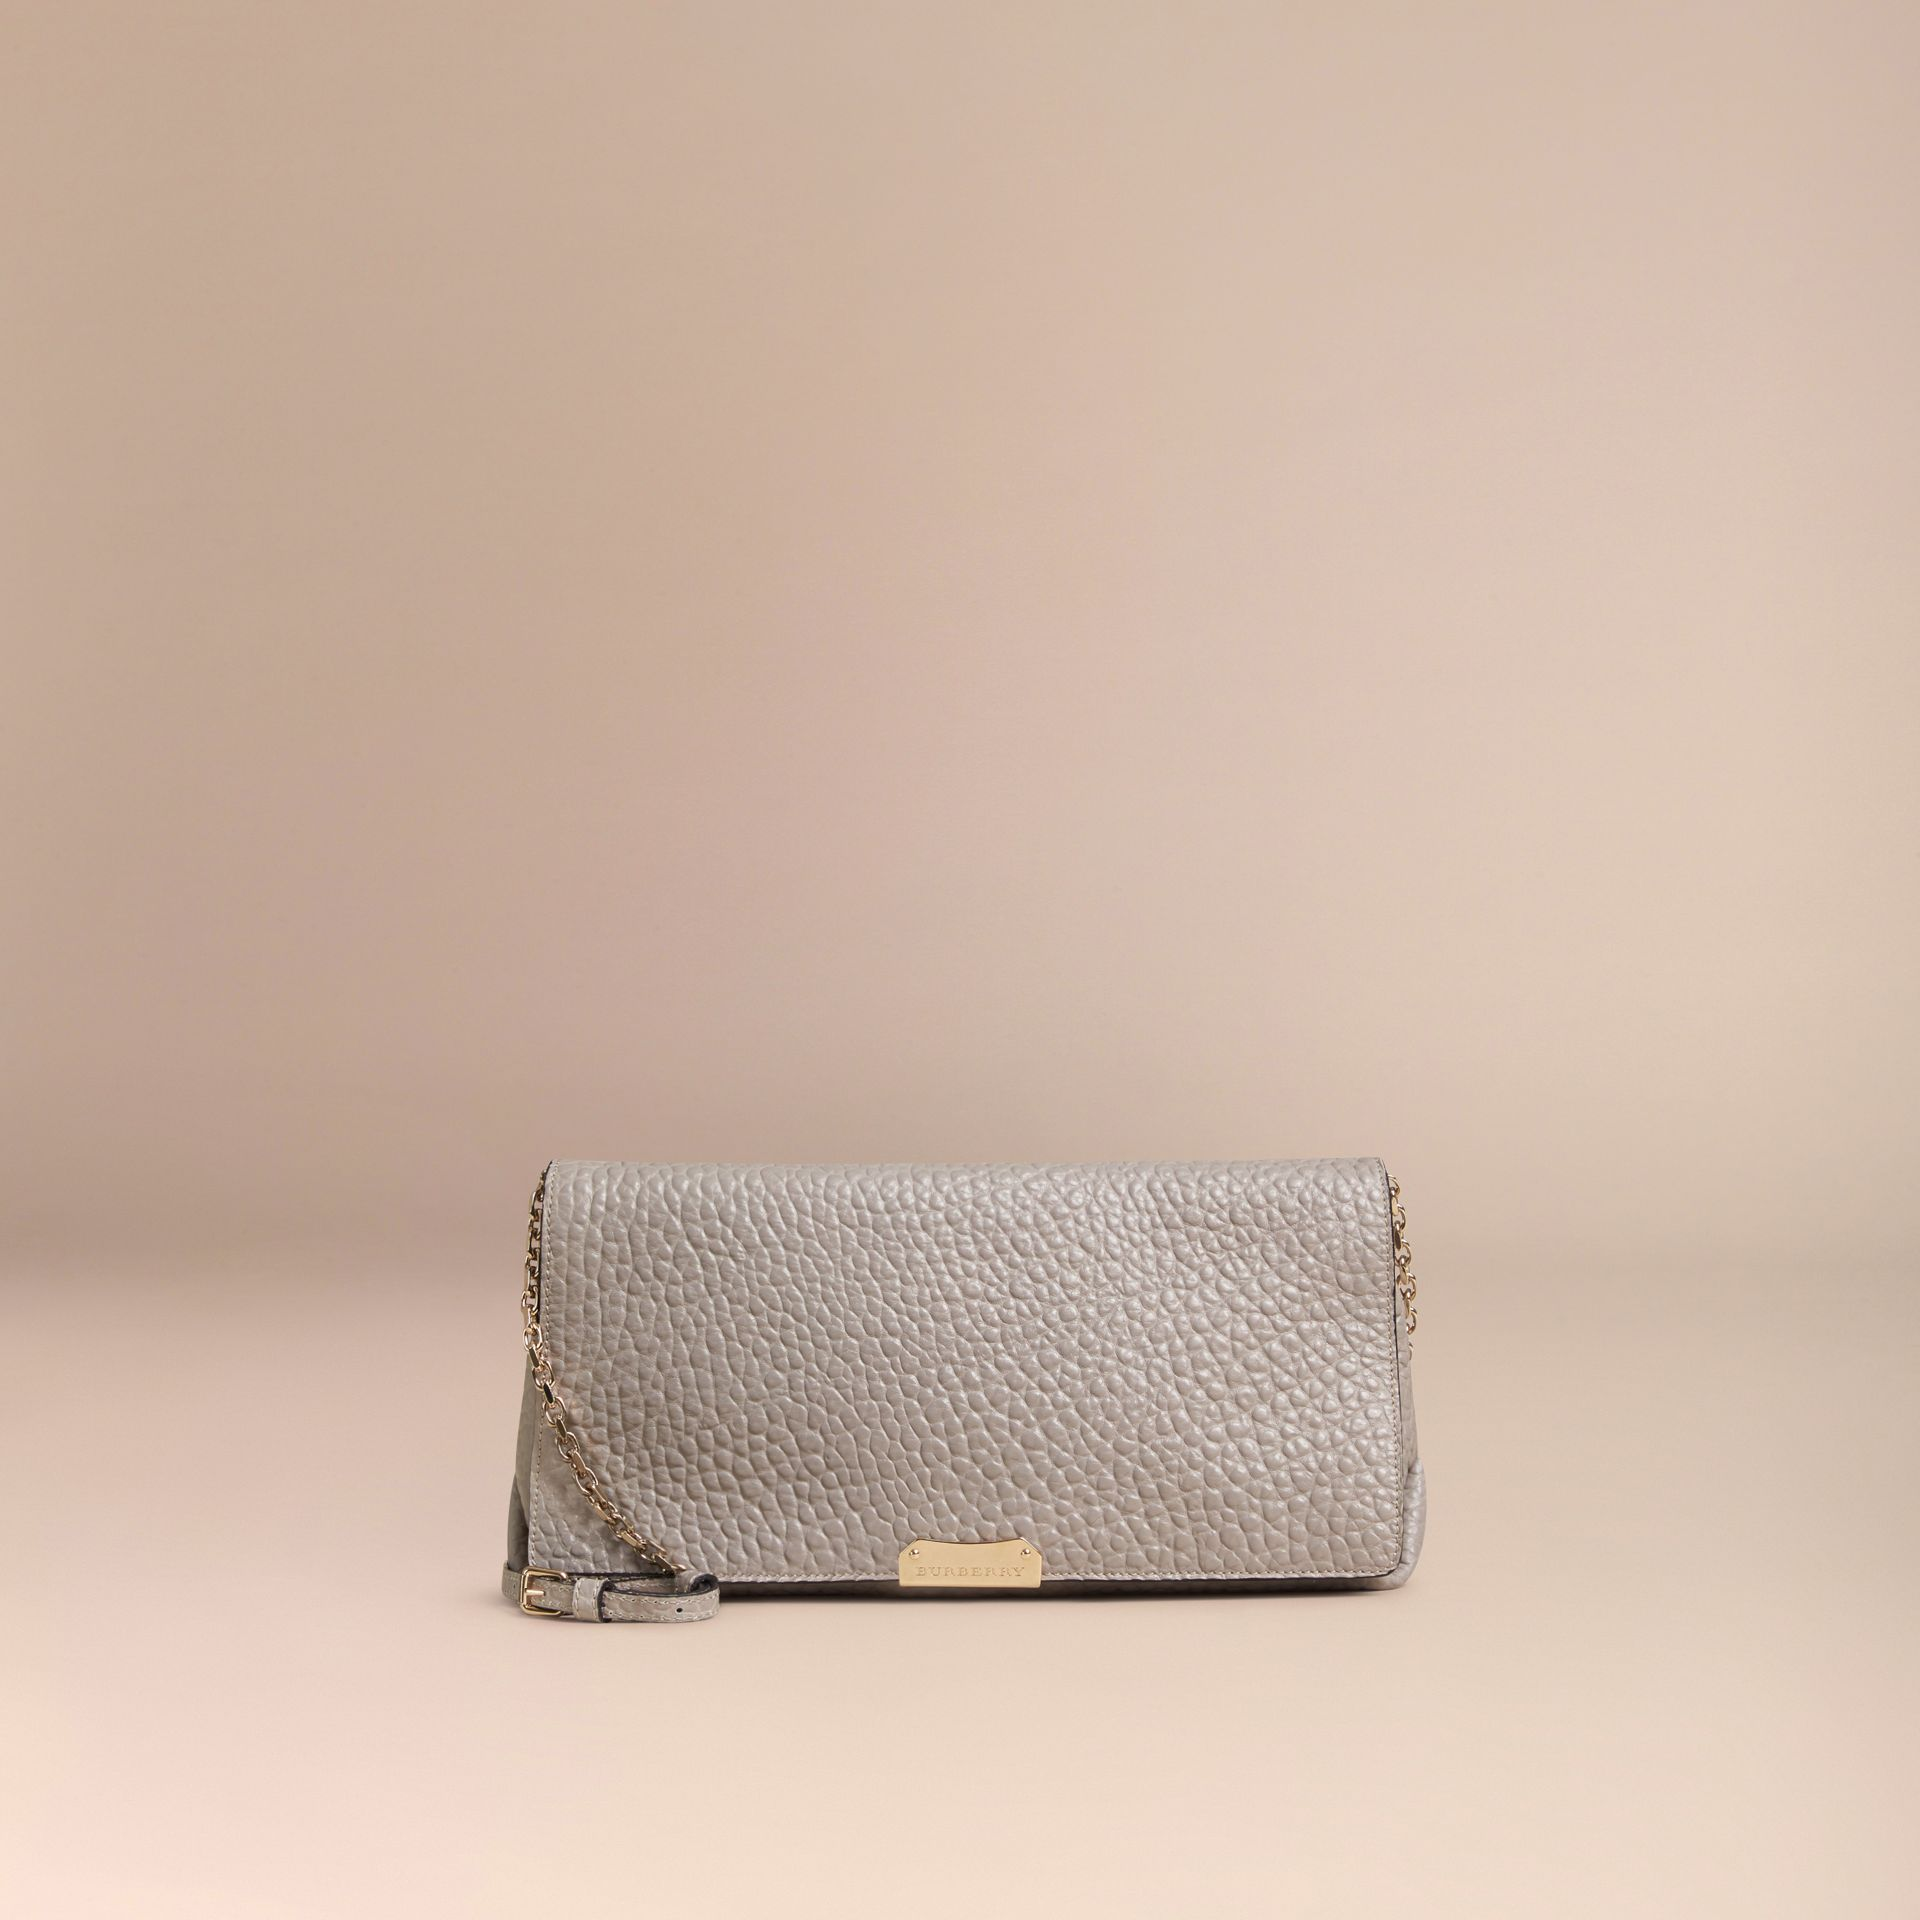 Gris pâle Clutch medium en cuir grainé emblématique Gris Pâle - photo de la galerie 7